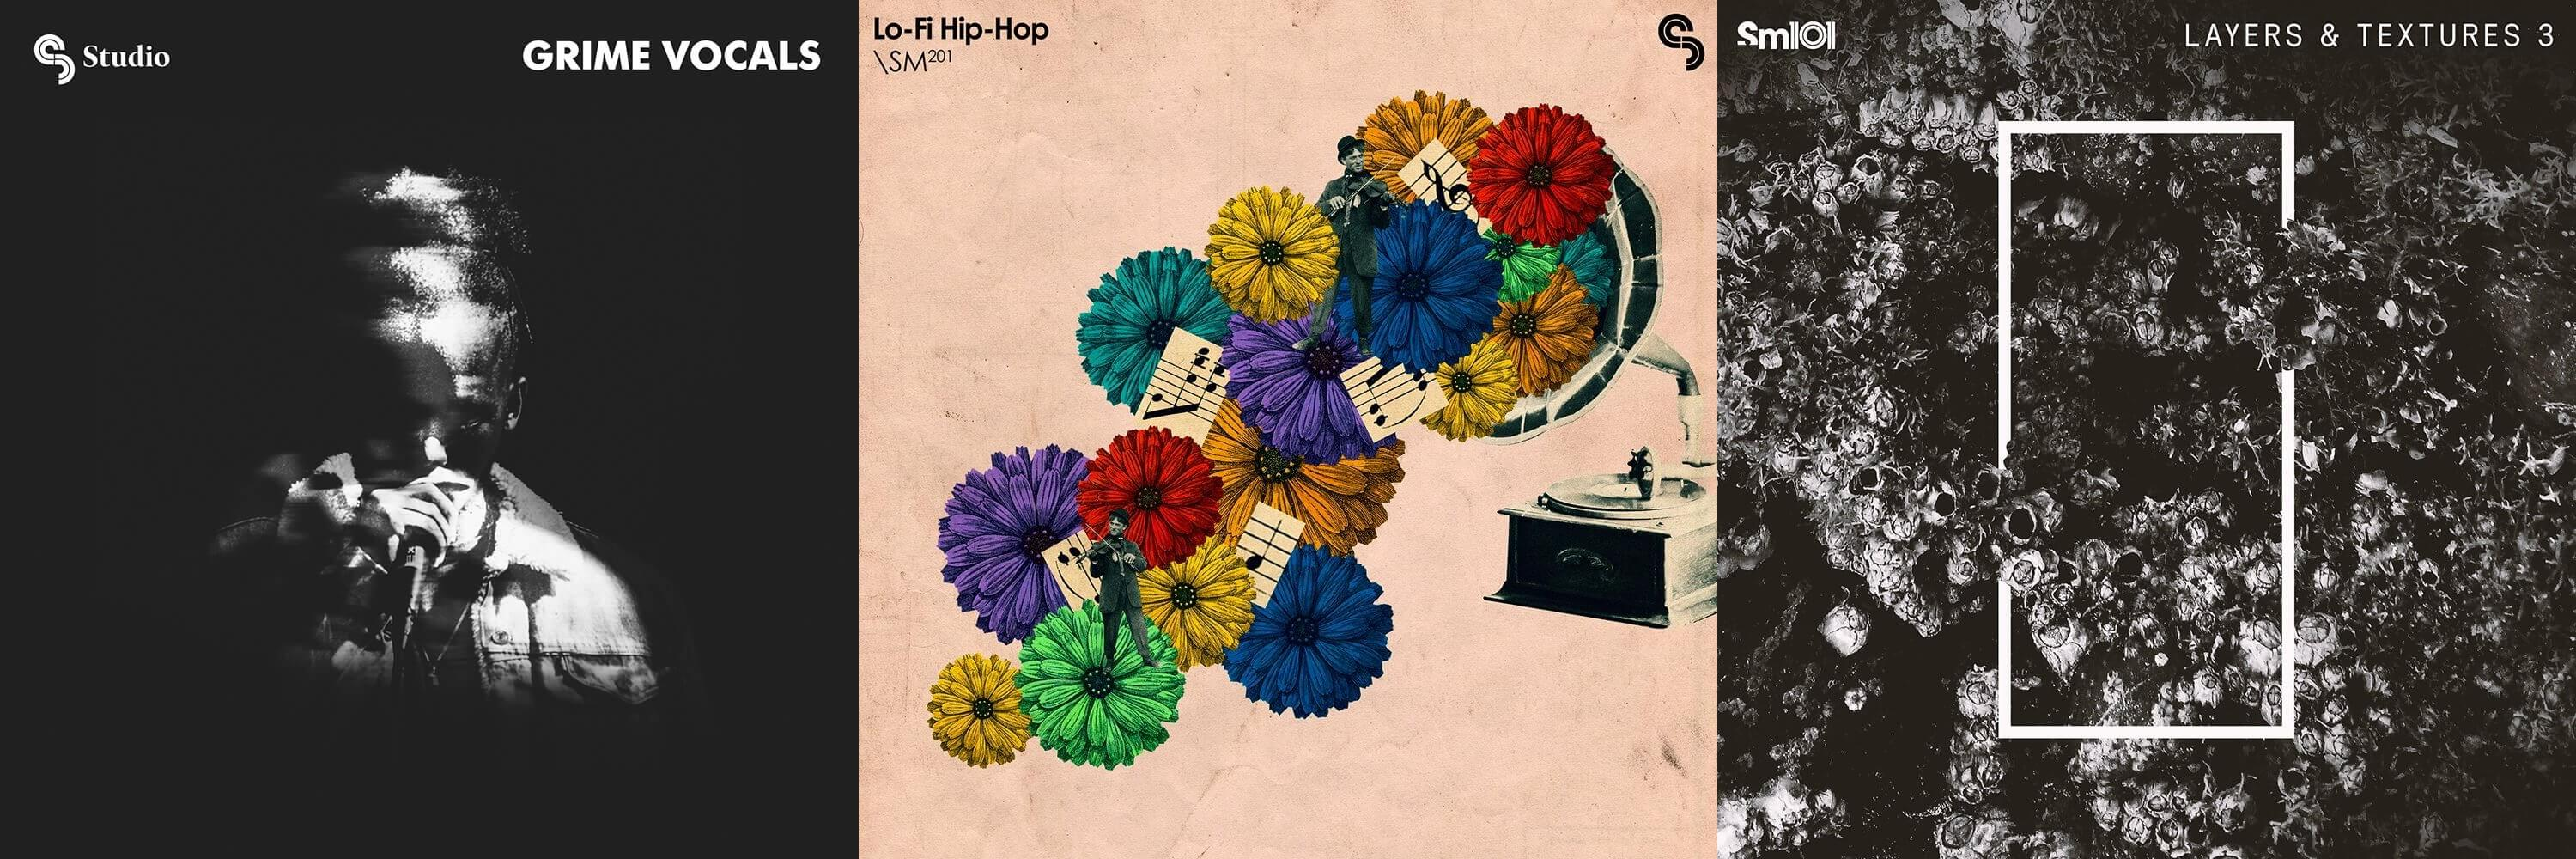 Sample Magic releases Grime Vocals, Lo-Fi Hip-Hop & Layers and